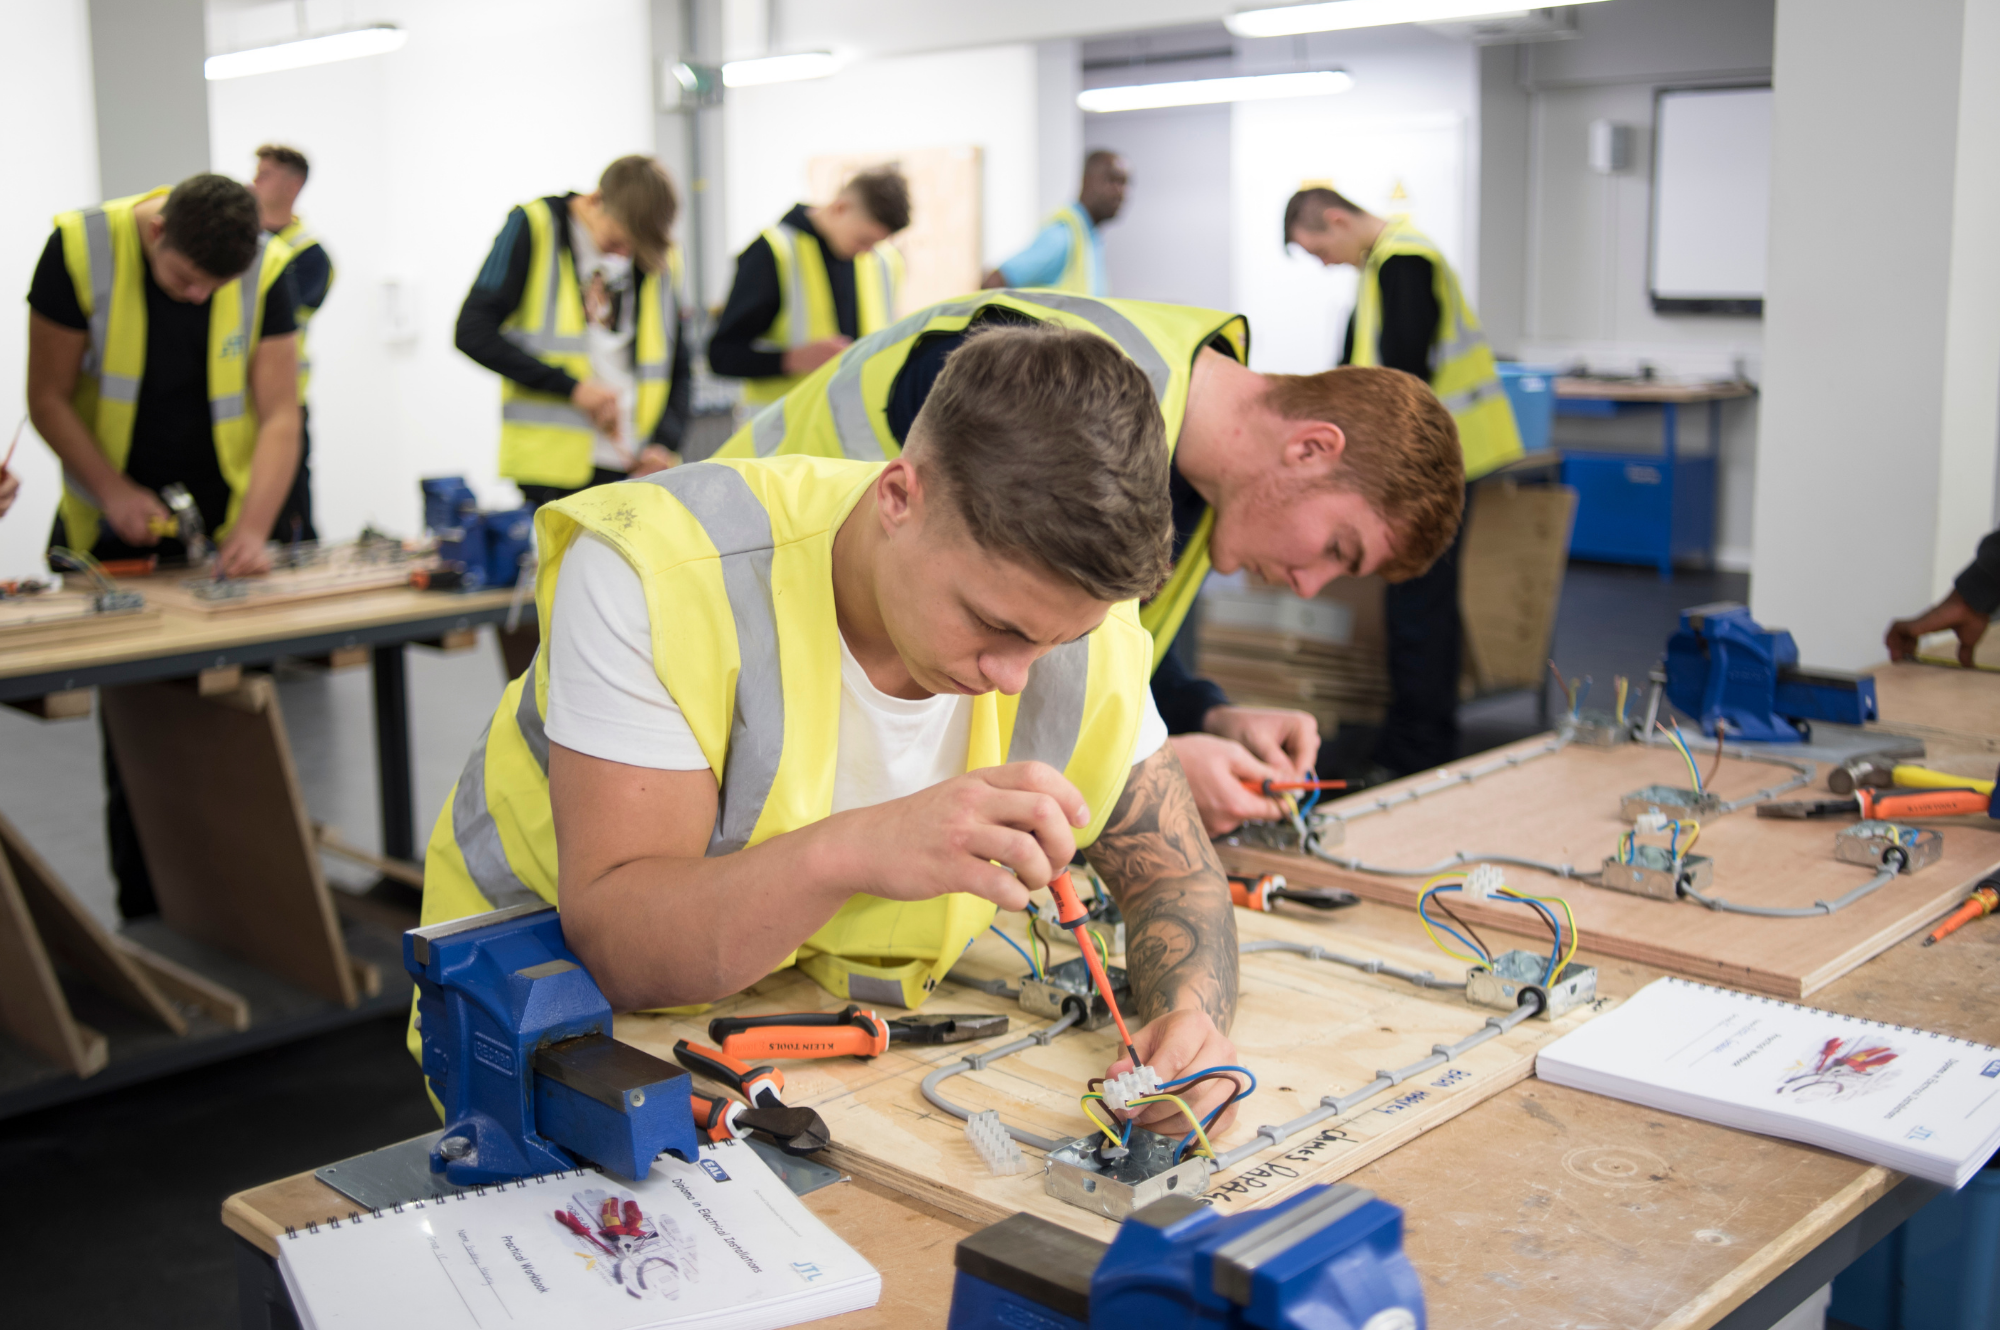 JTL electrical Apprentice